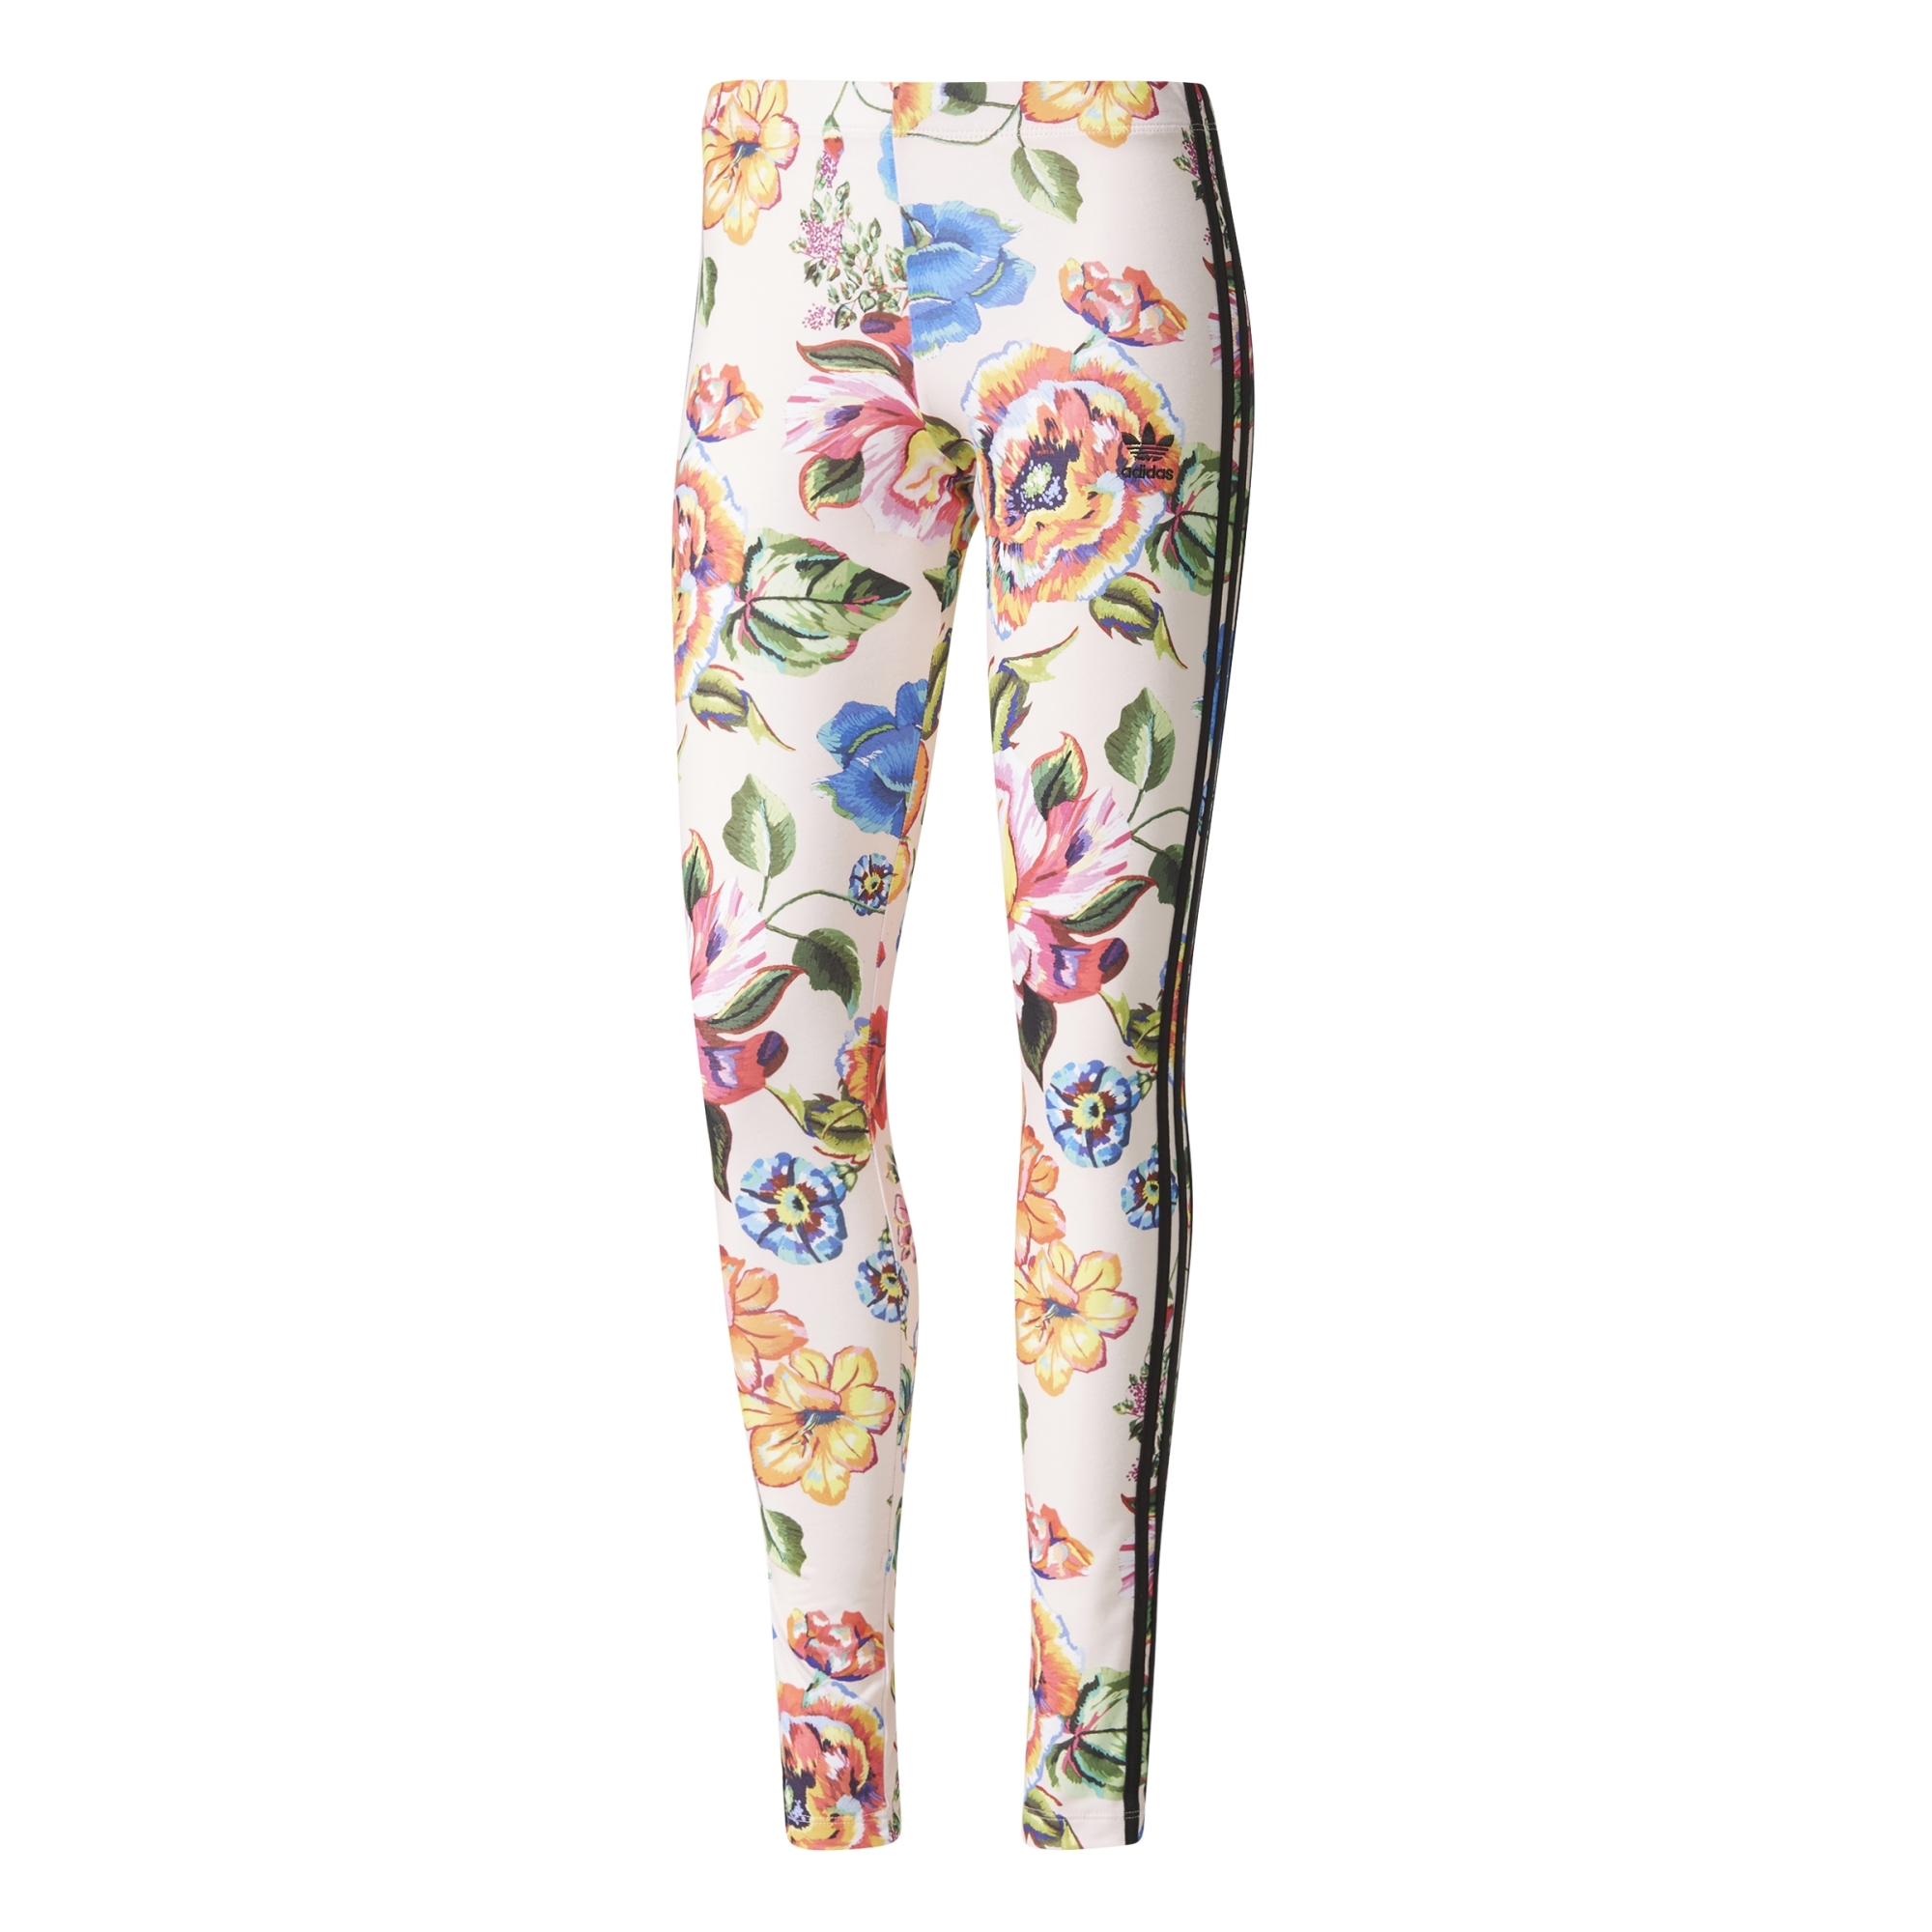 Floralita Tights multicolor Farm The Originals Adidas WZqnICUt